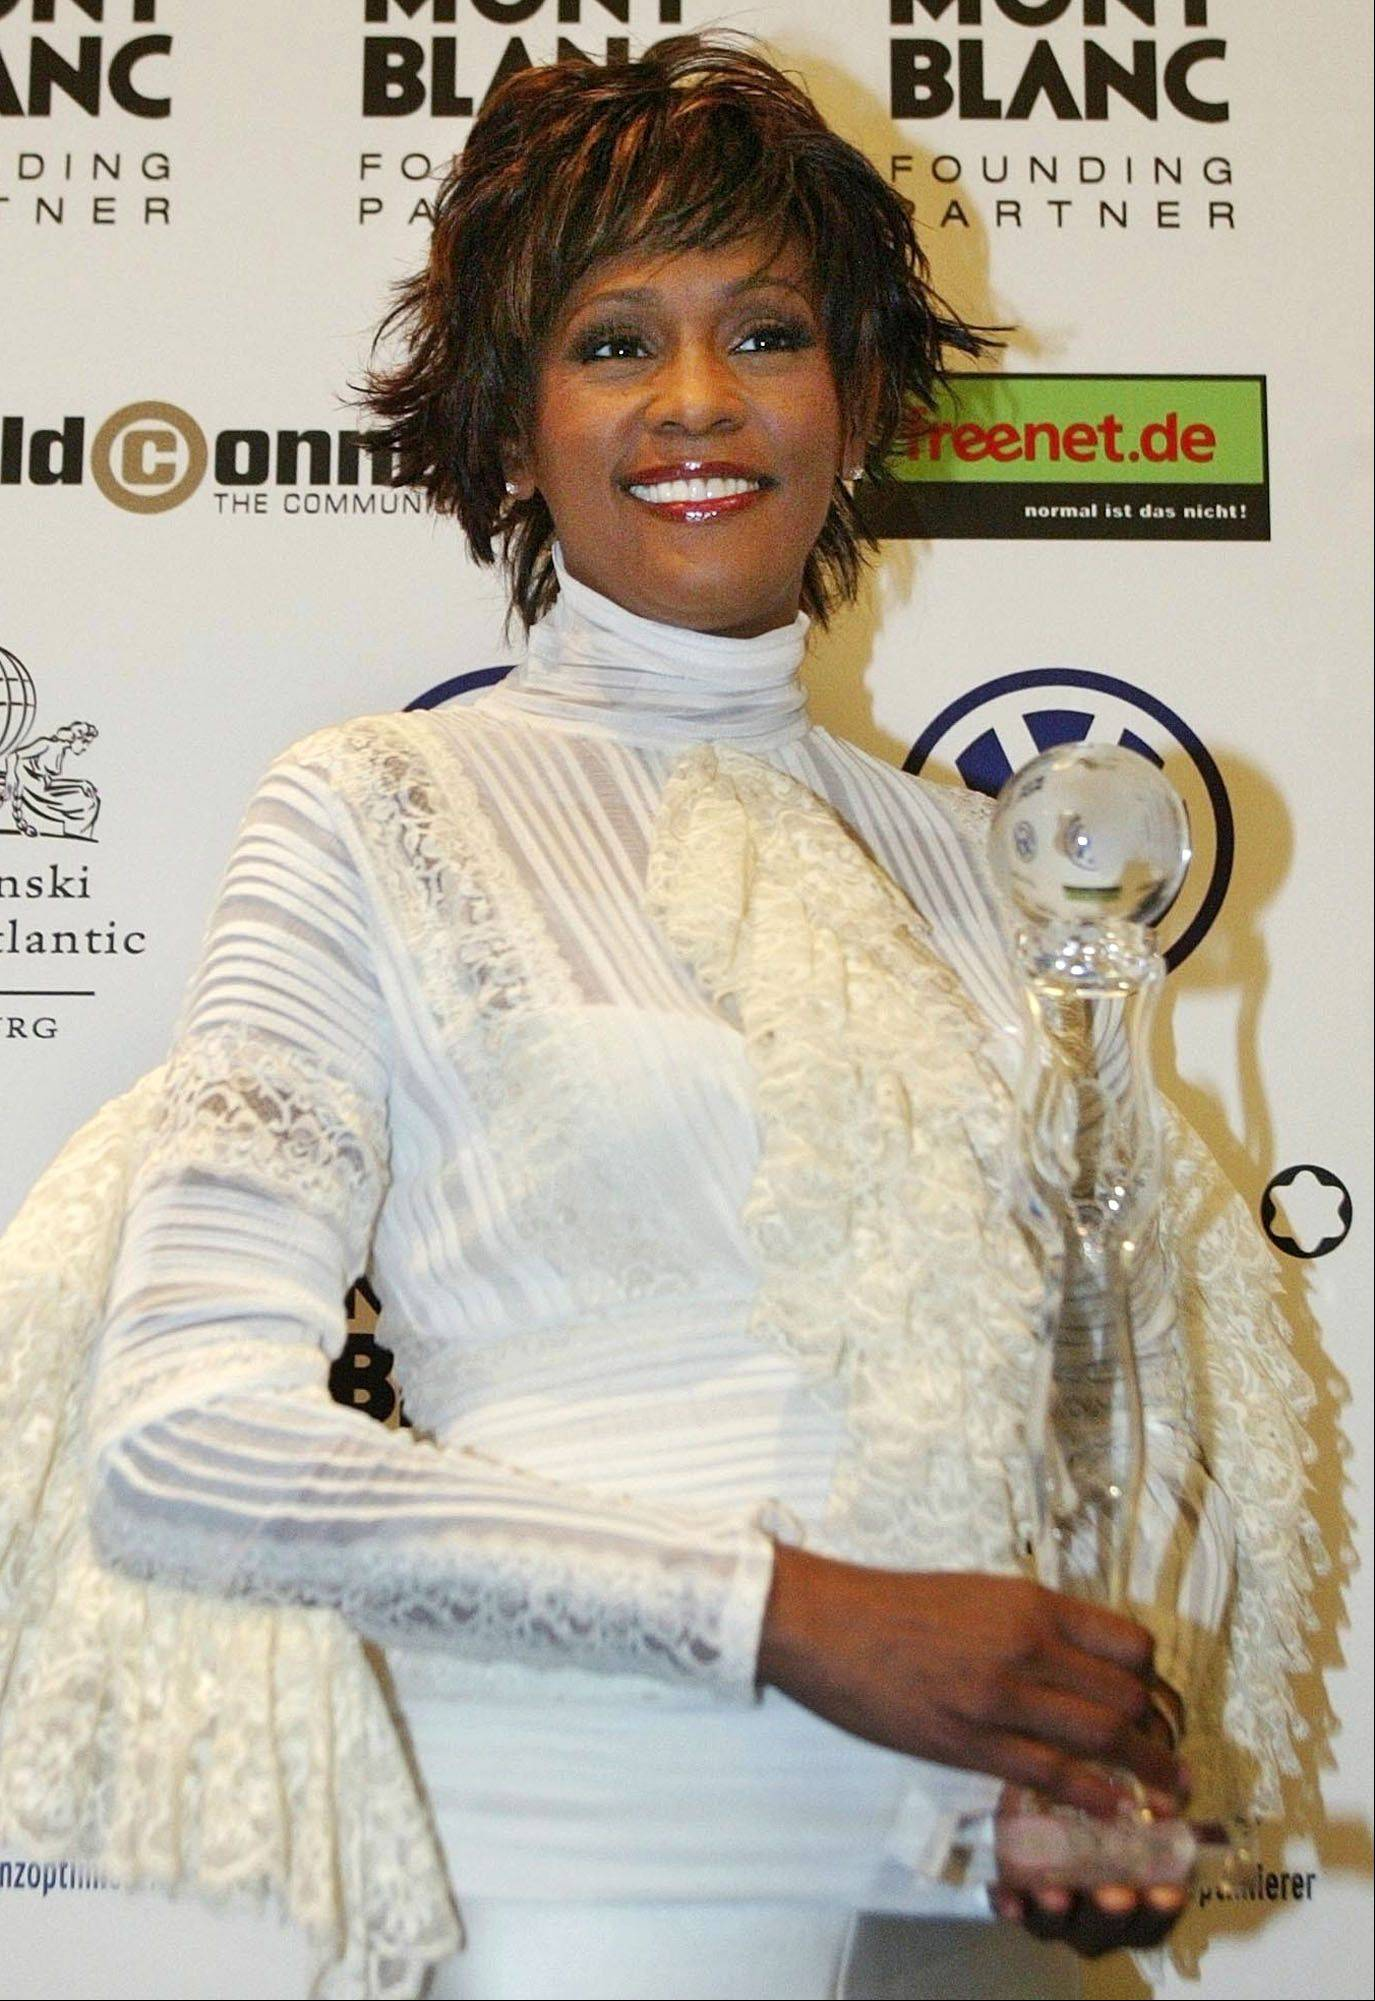 Singer Whitney Houston poses with a lifetime achievement trophy at the World Women's Award ceremony in Hamburg's Congress Center in northern Germany on June 9, 2004.